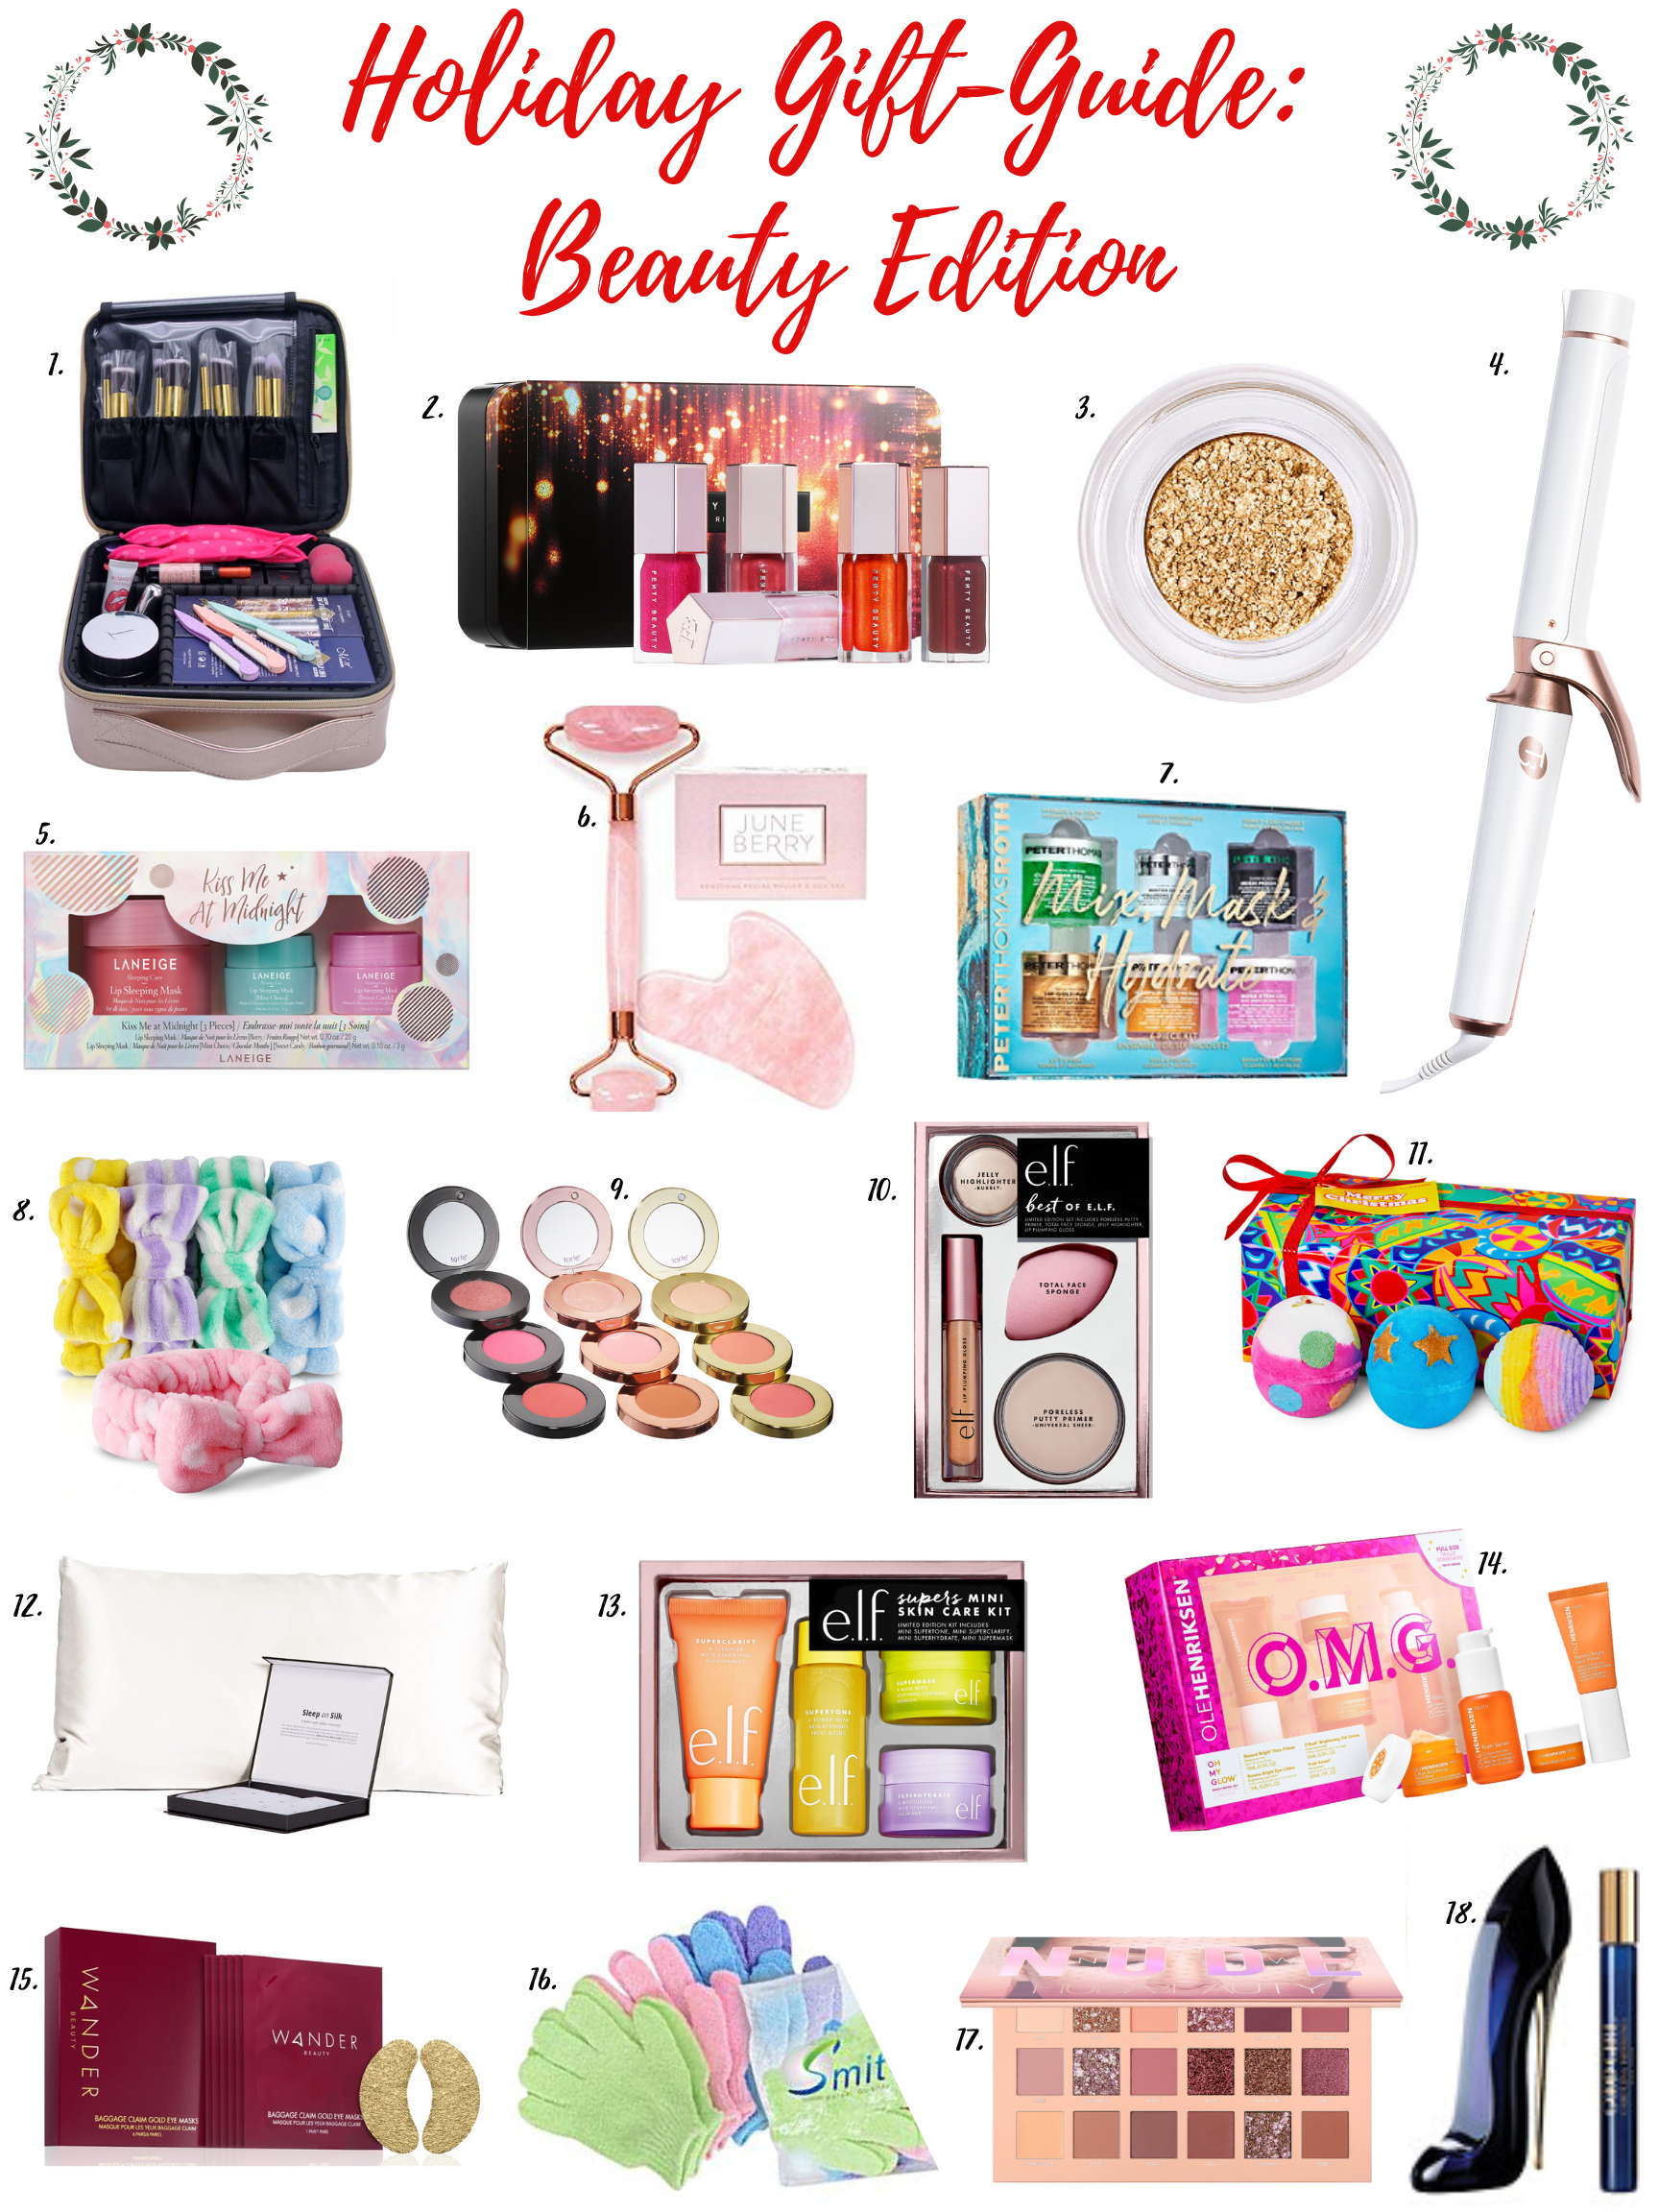 HOLIDAY GIFT-GUIDE: BEAUTY EDITION!